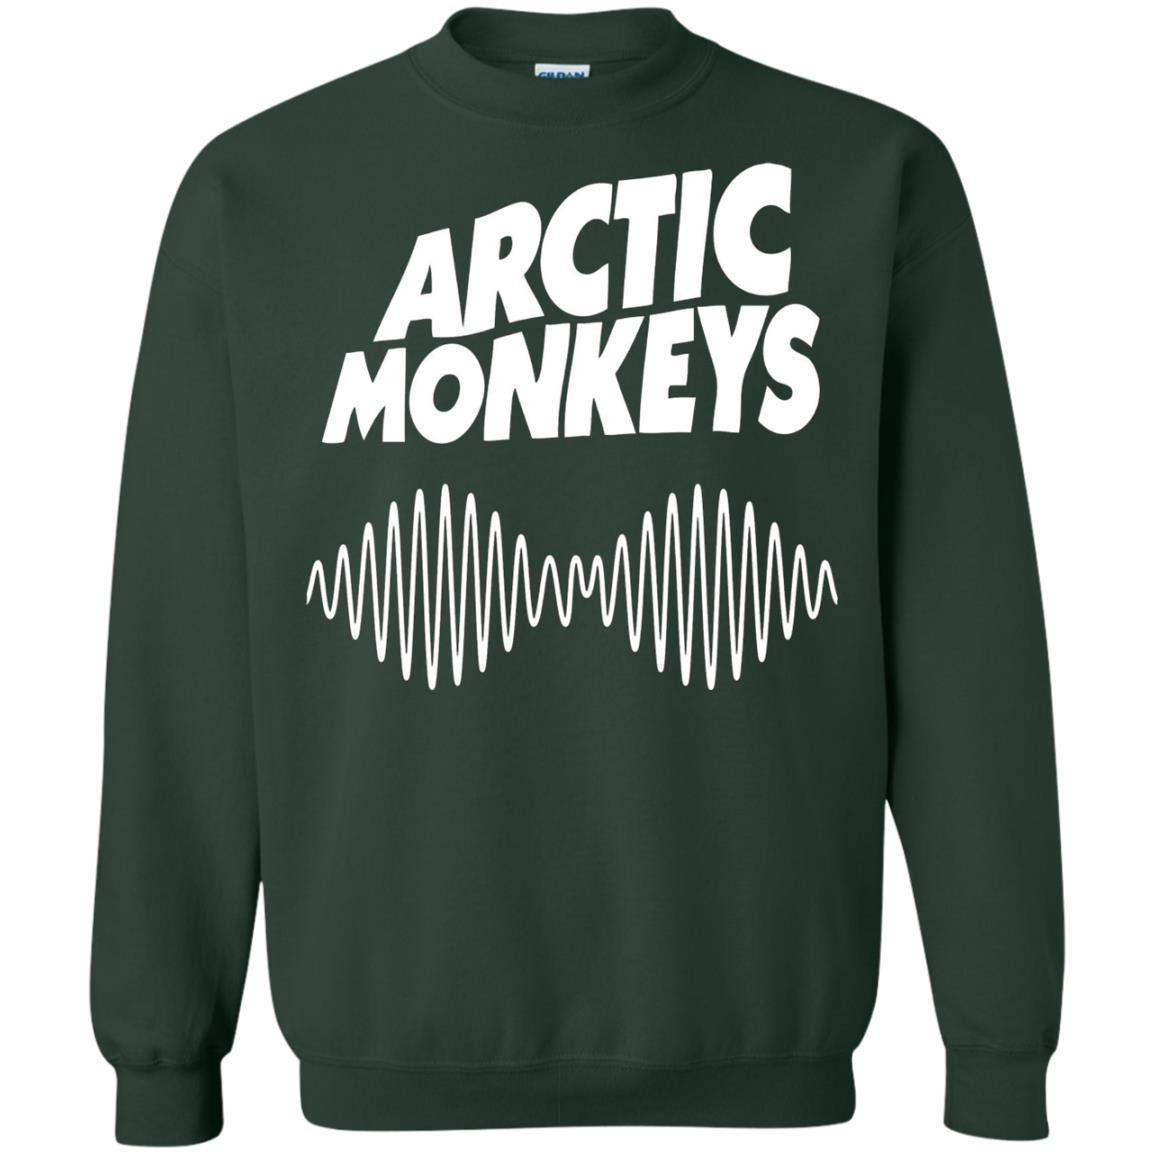 Artic Monkeys Soundwave Music Band Tshirt Forest Green / 5XL